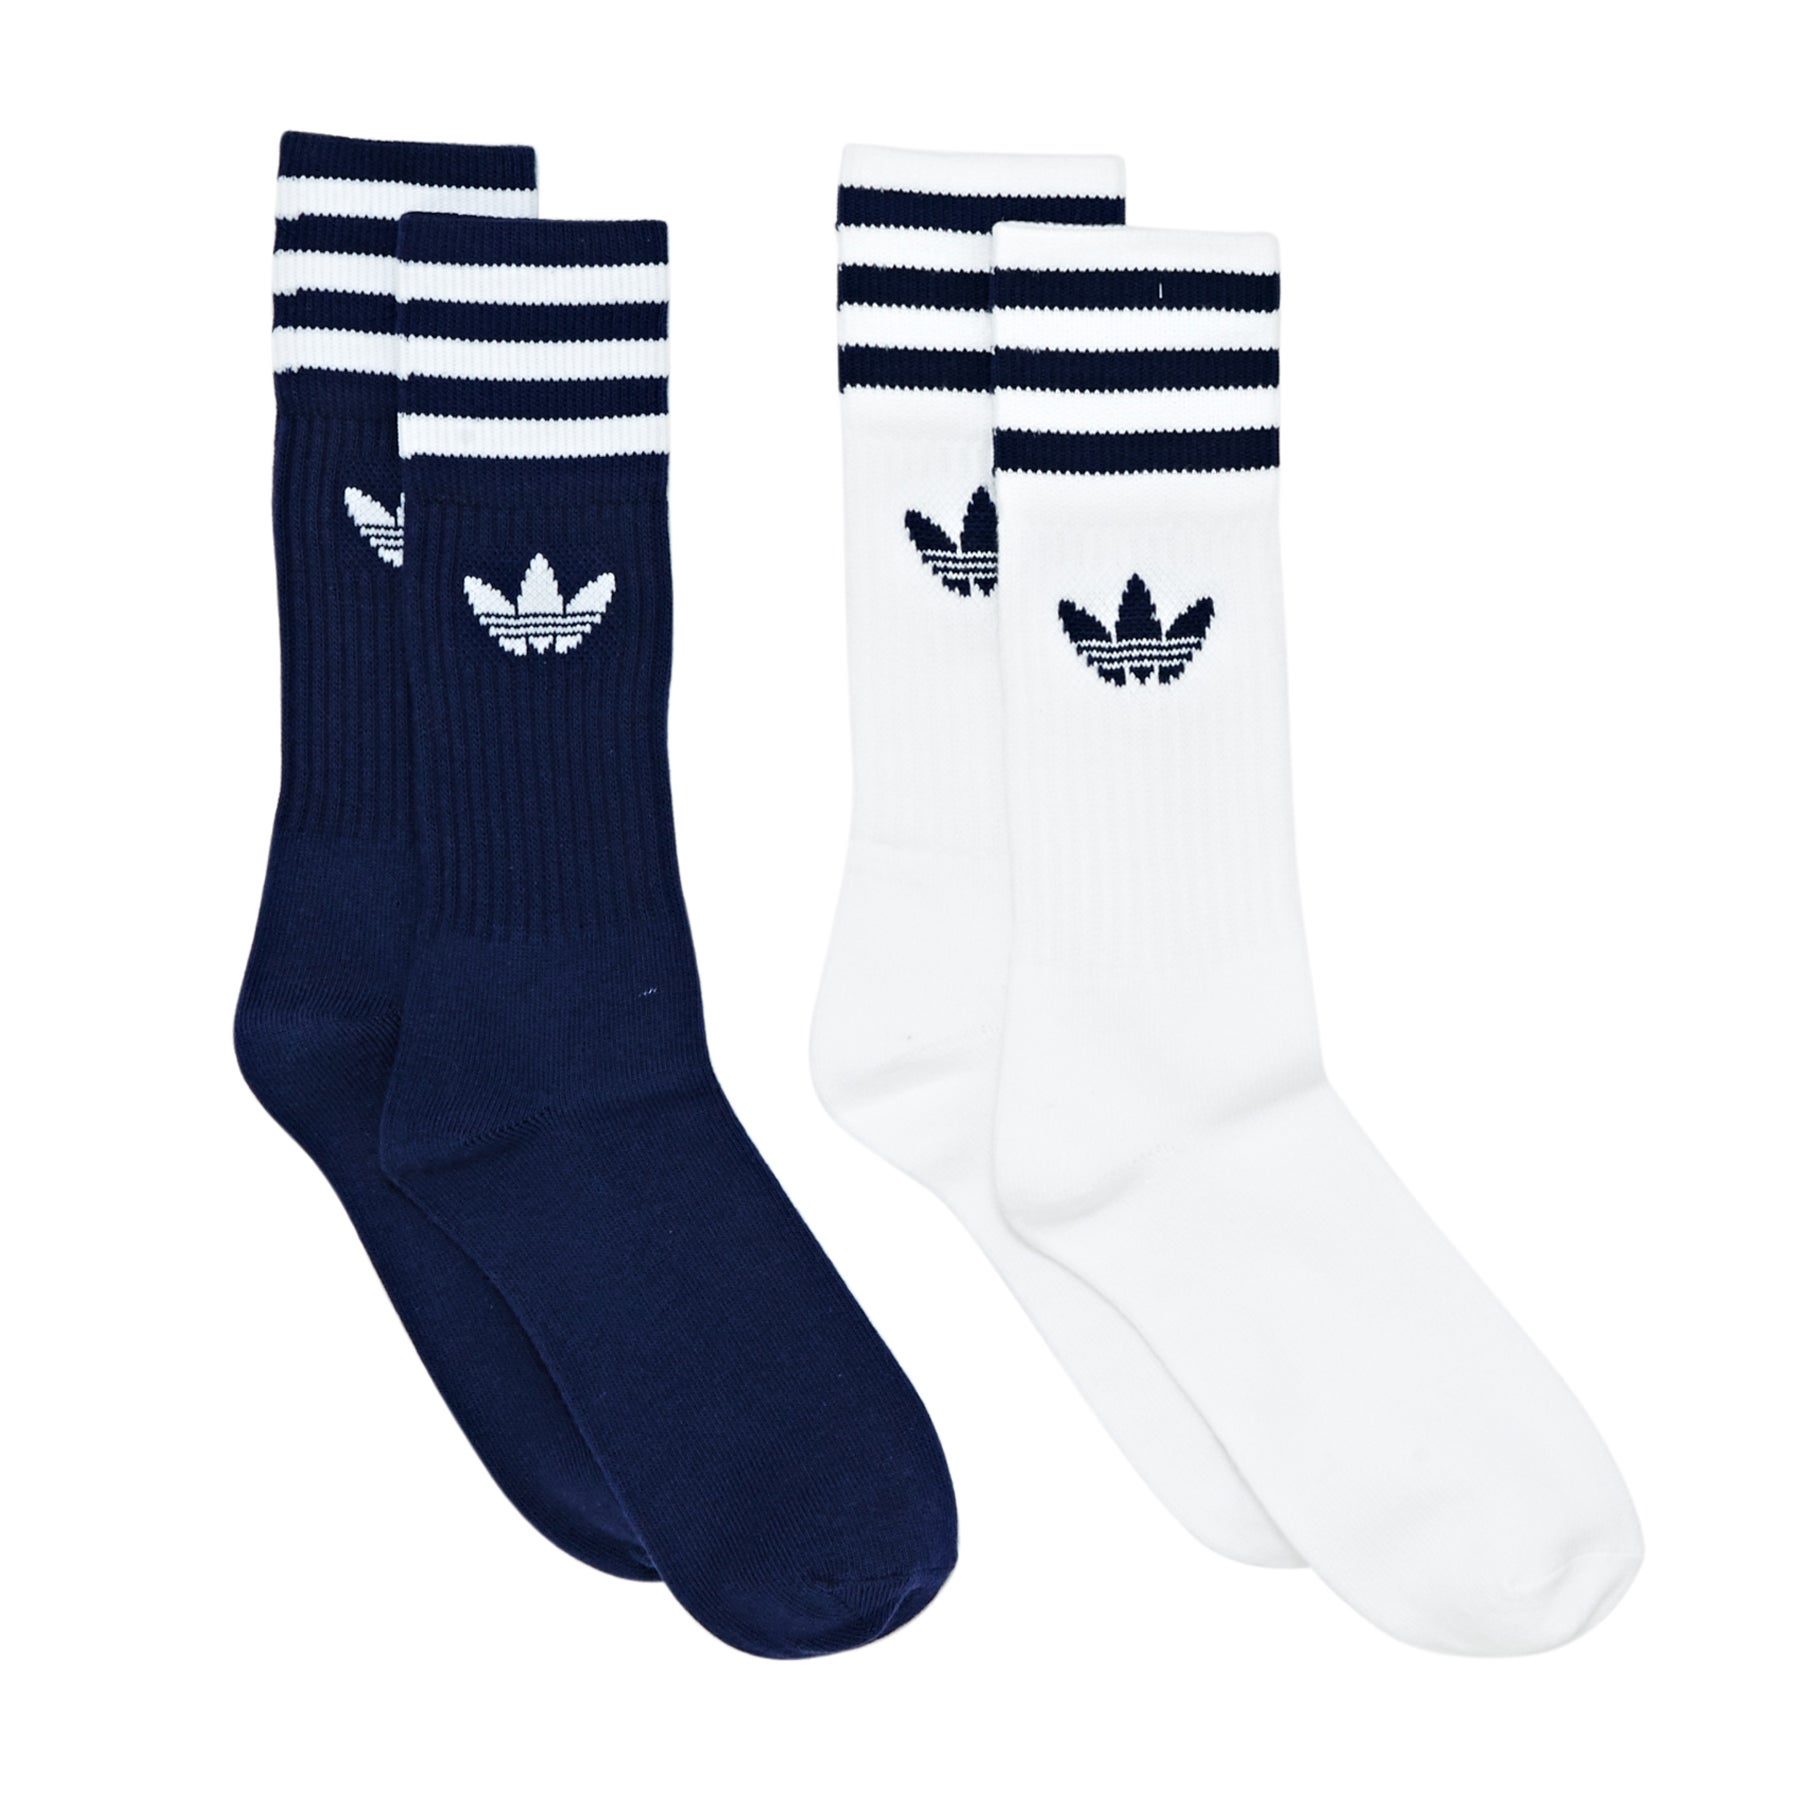 Adidas Originals Solid Crew 2pack Socks - Dark Blue White